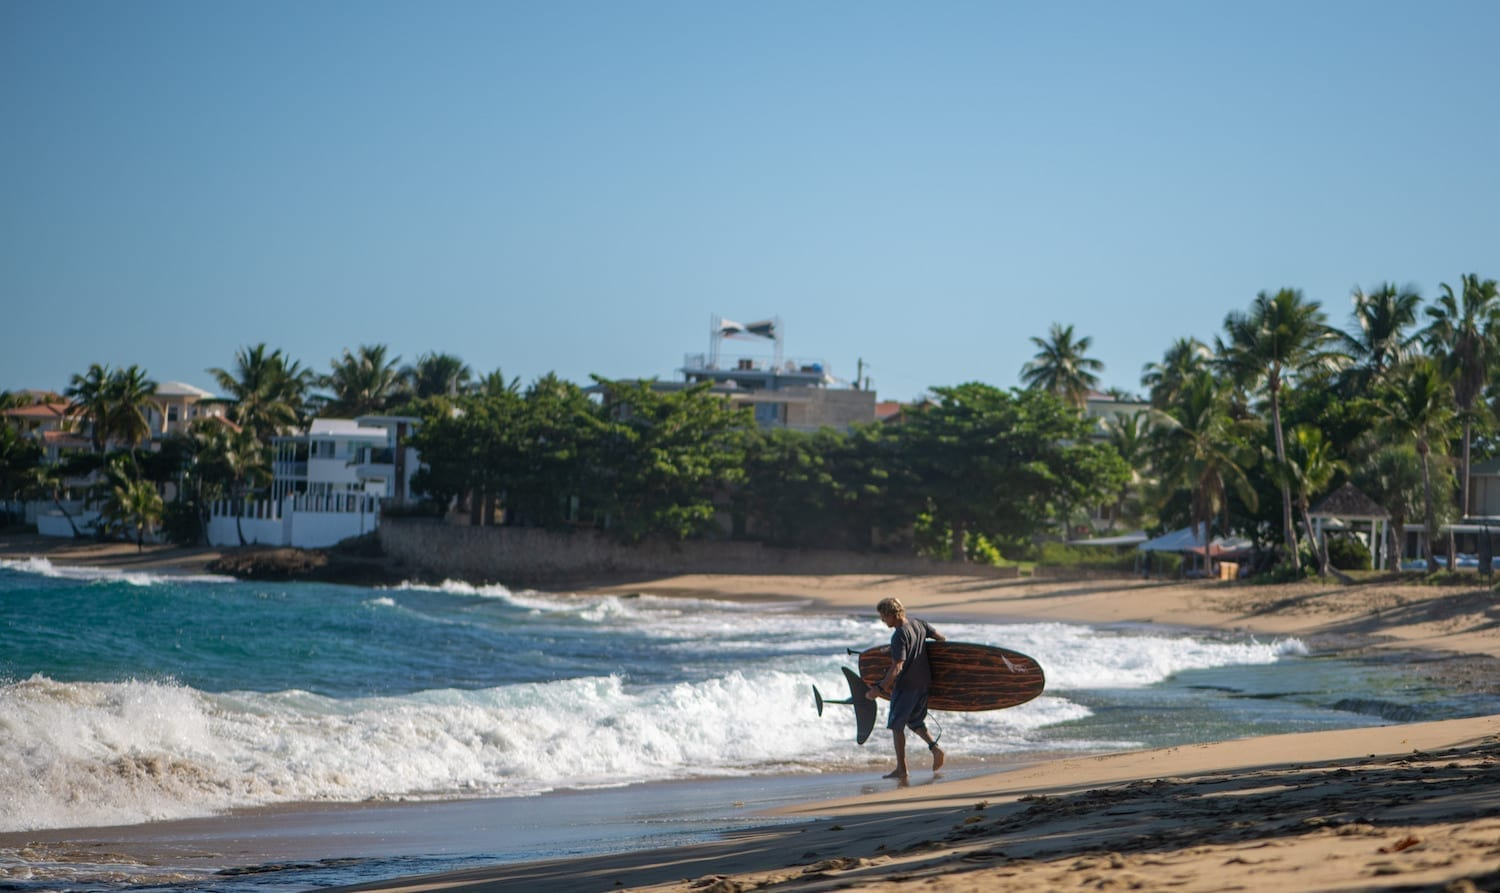 walking on a beach with a hydrofoil surfboard